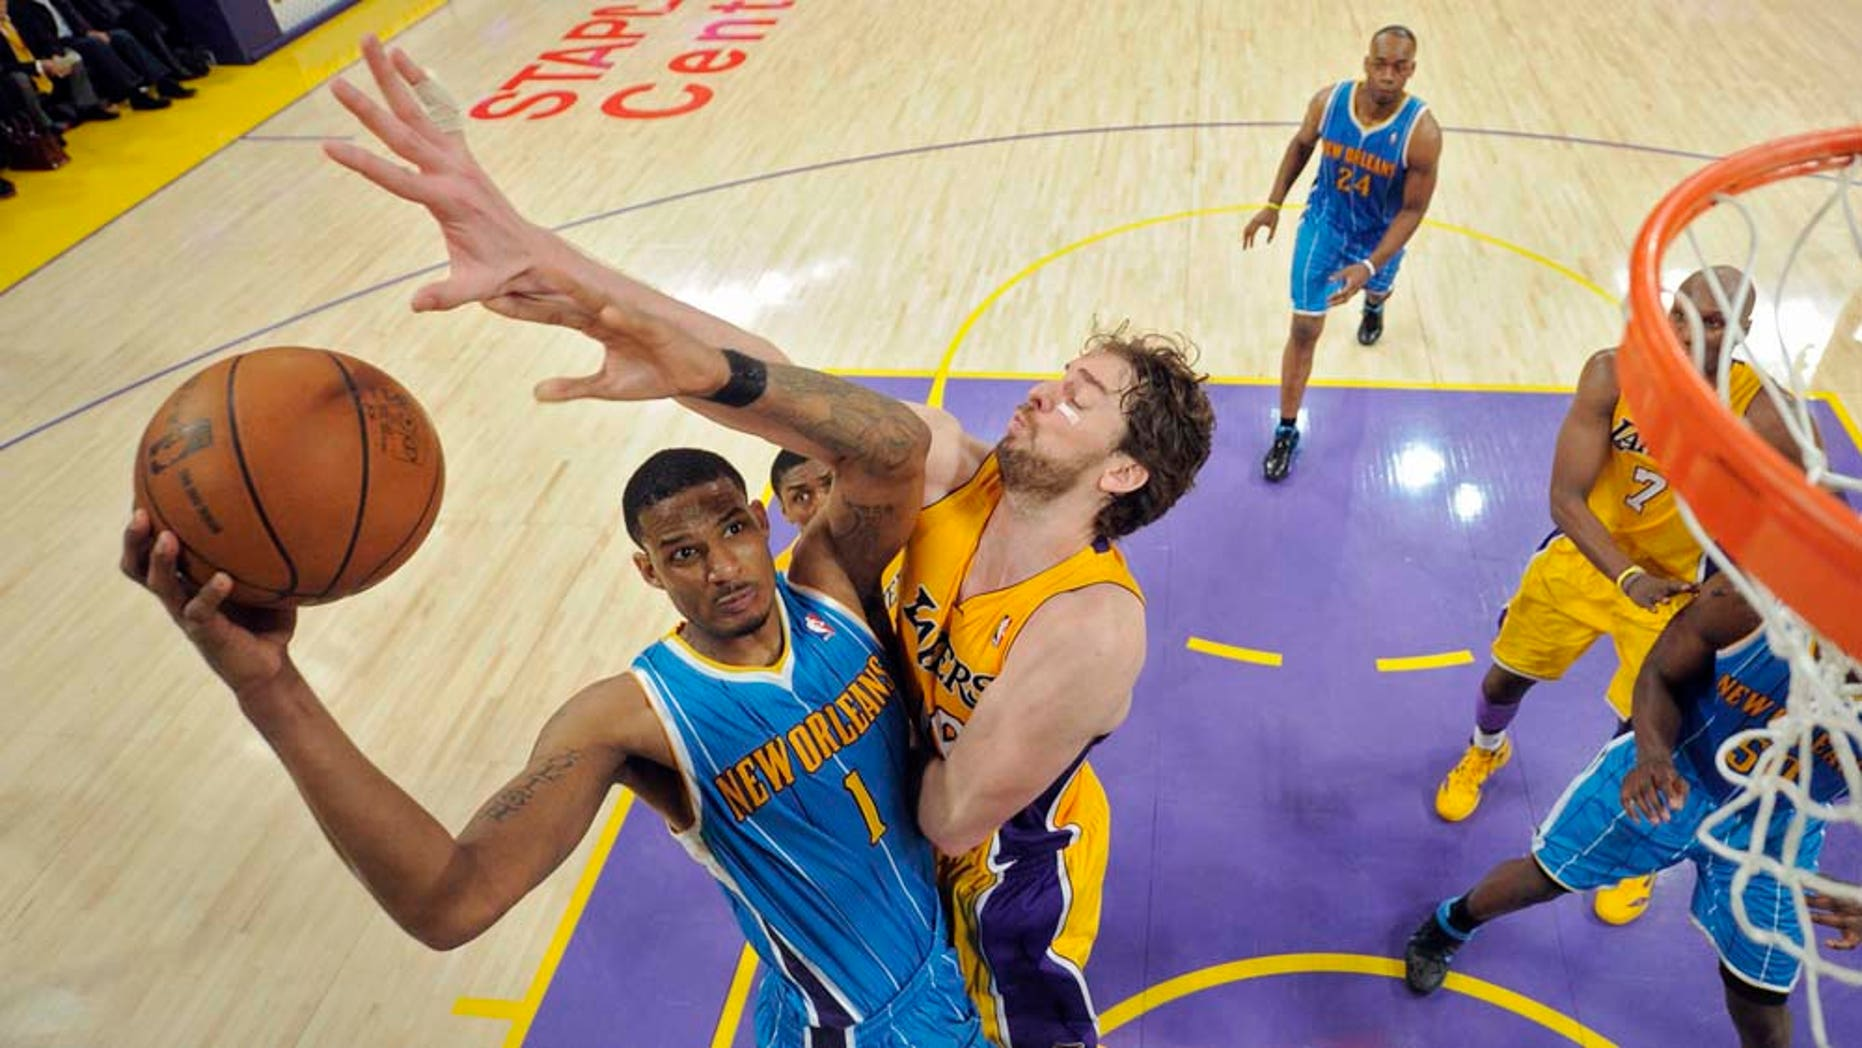 New Orleans Hornets forward Trevor Ariza, left, puts up a shot as Los Angeles Lakers forward Pau Gasol of Spain defends during the second half in Game 2 of a first-round NBA basketball playoff series, Wednesday, April 20, 2011, in Los Angeles. The Lakers won 87-78. (AP Photo/Mark J. Terrill)